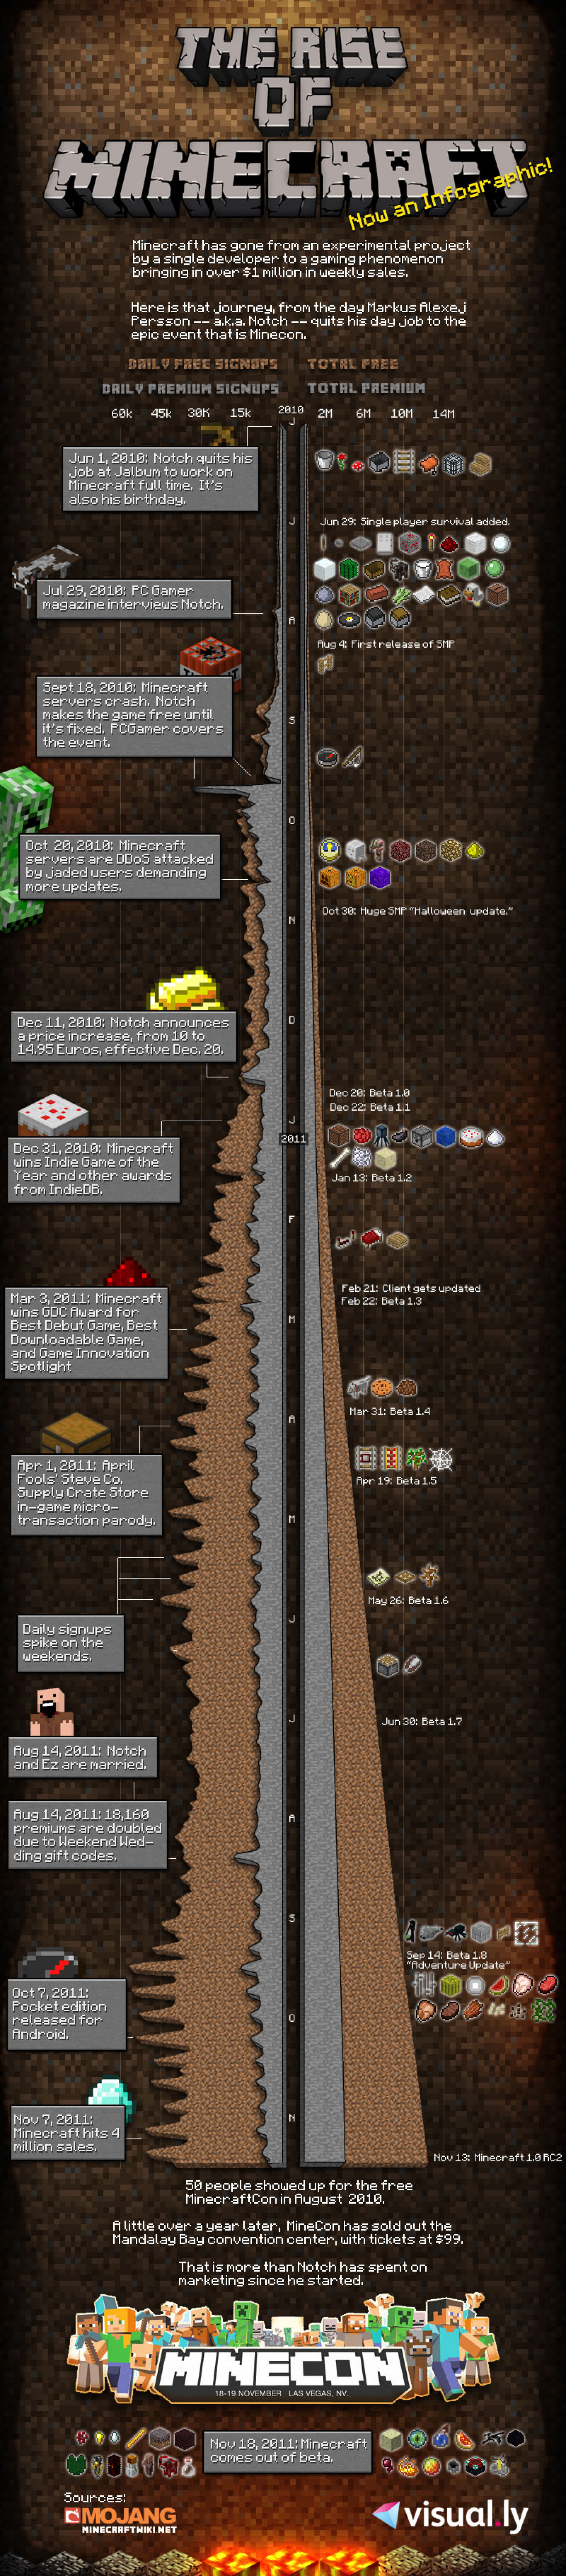 The Rise of Minecraft Infographic